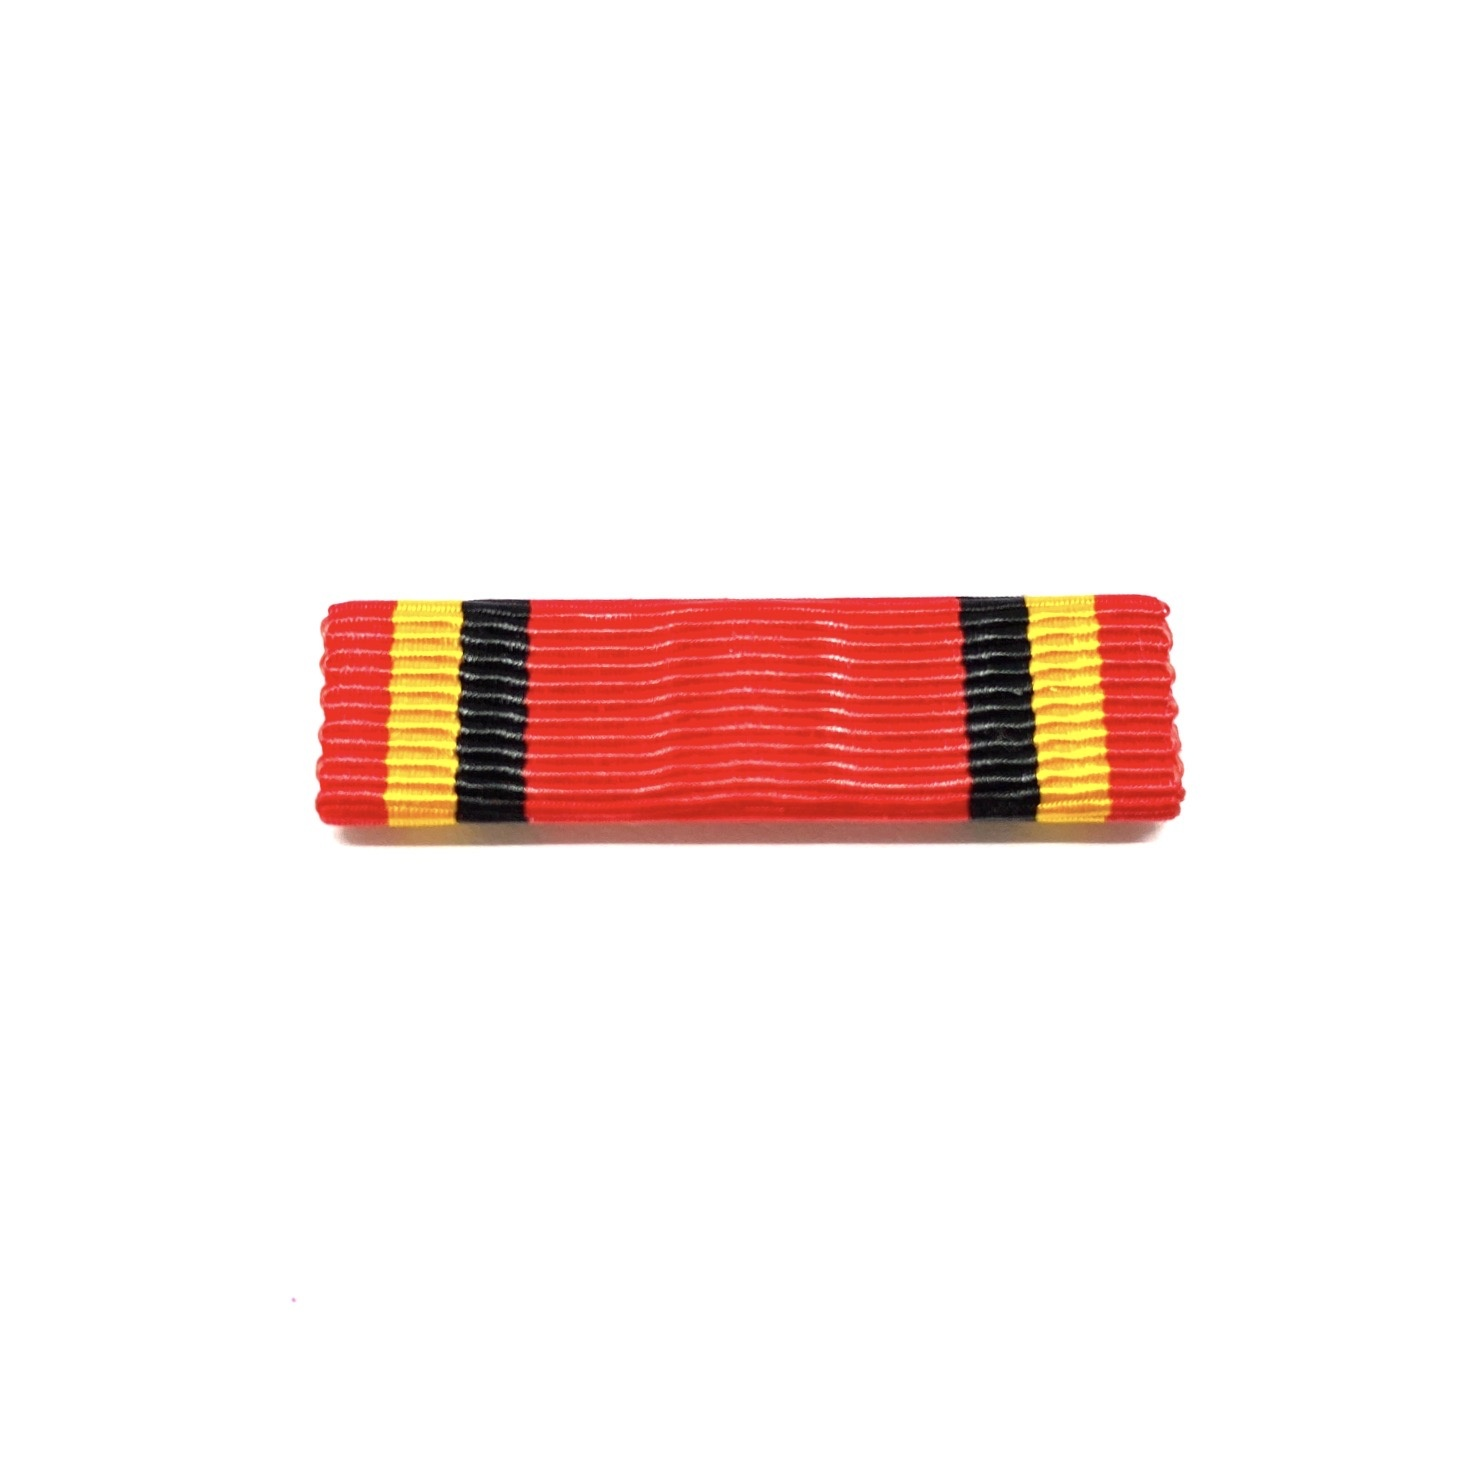 Military Medal Courage and Dedication 2nd class